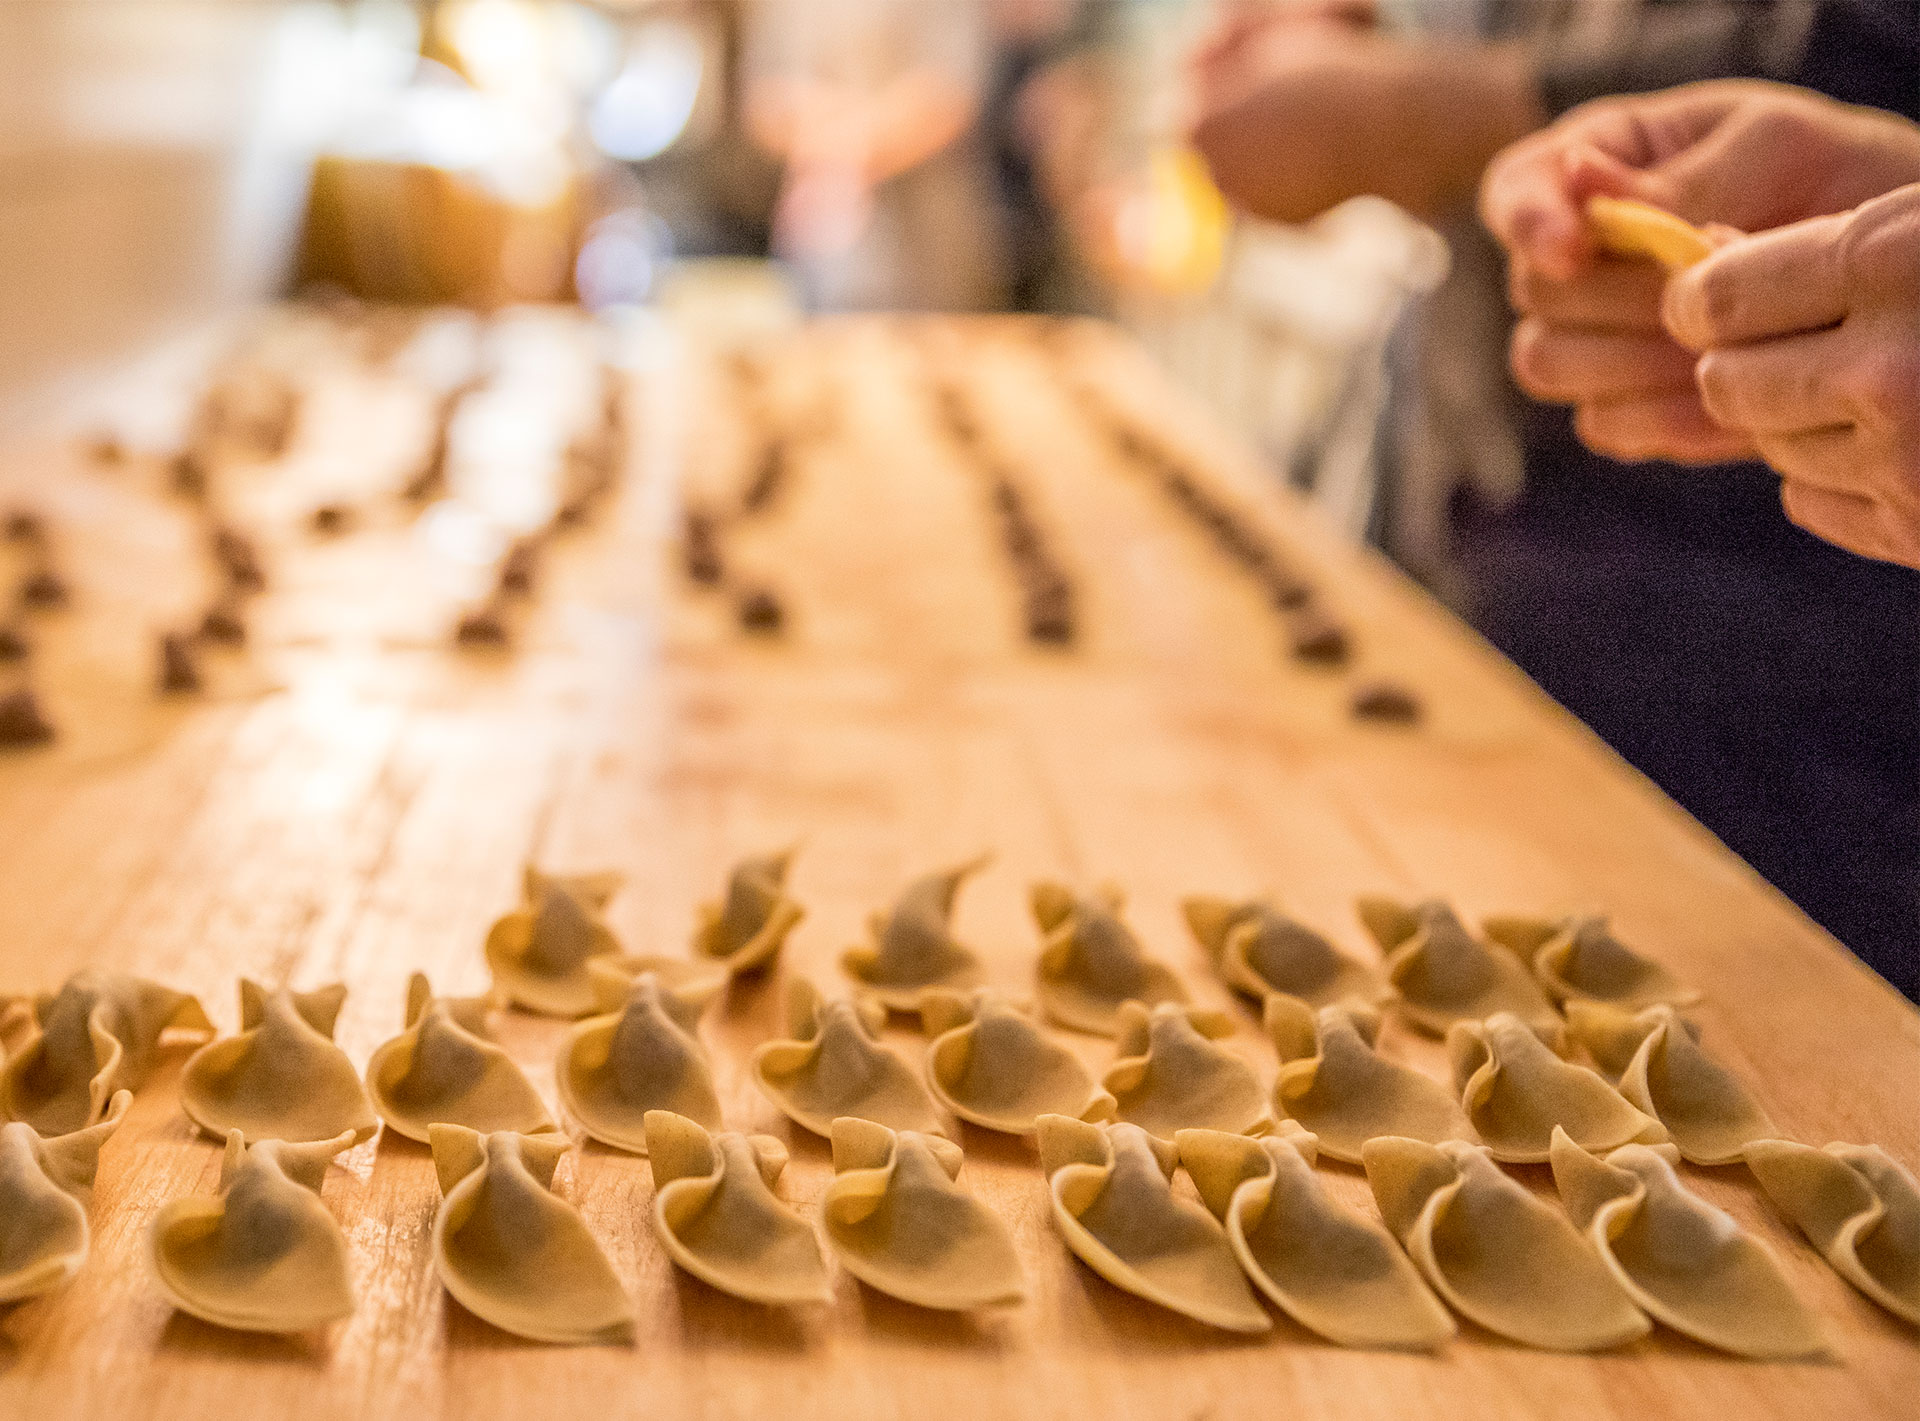 Handmade pasta being crafted at a wooden table in its fresh state